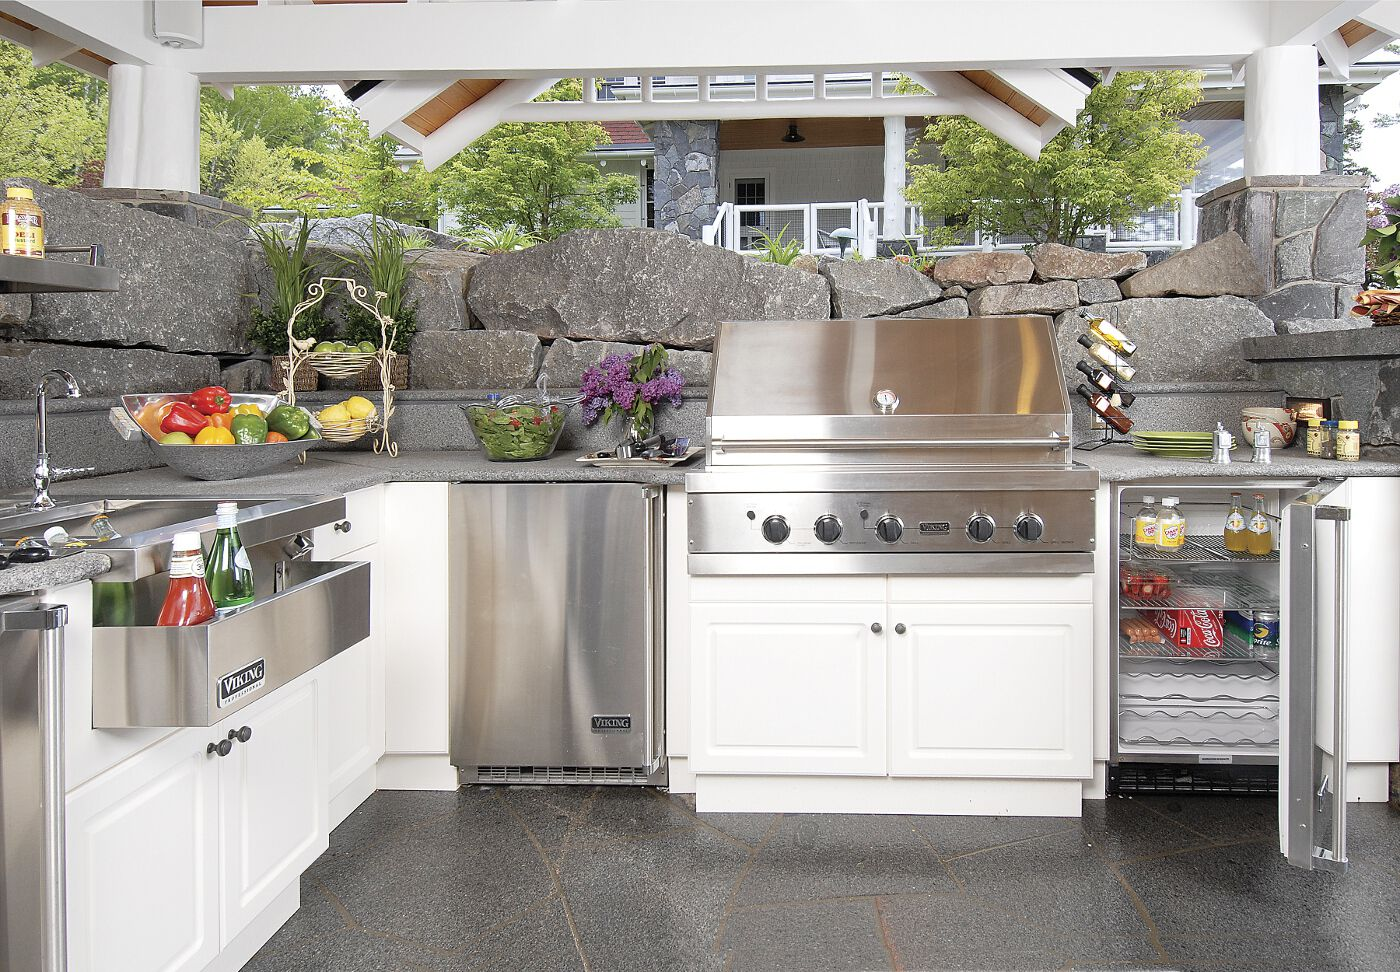 Take Your Outdoor Entertaining To The Next Level With Atlantis Outdoor Cabinetry Outdoor Kitchen Appliances Outdoor Kitchen Outdoor Kitchen Countertops